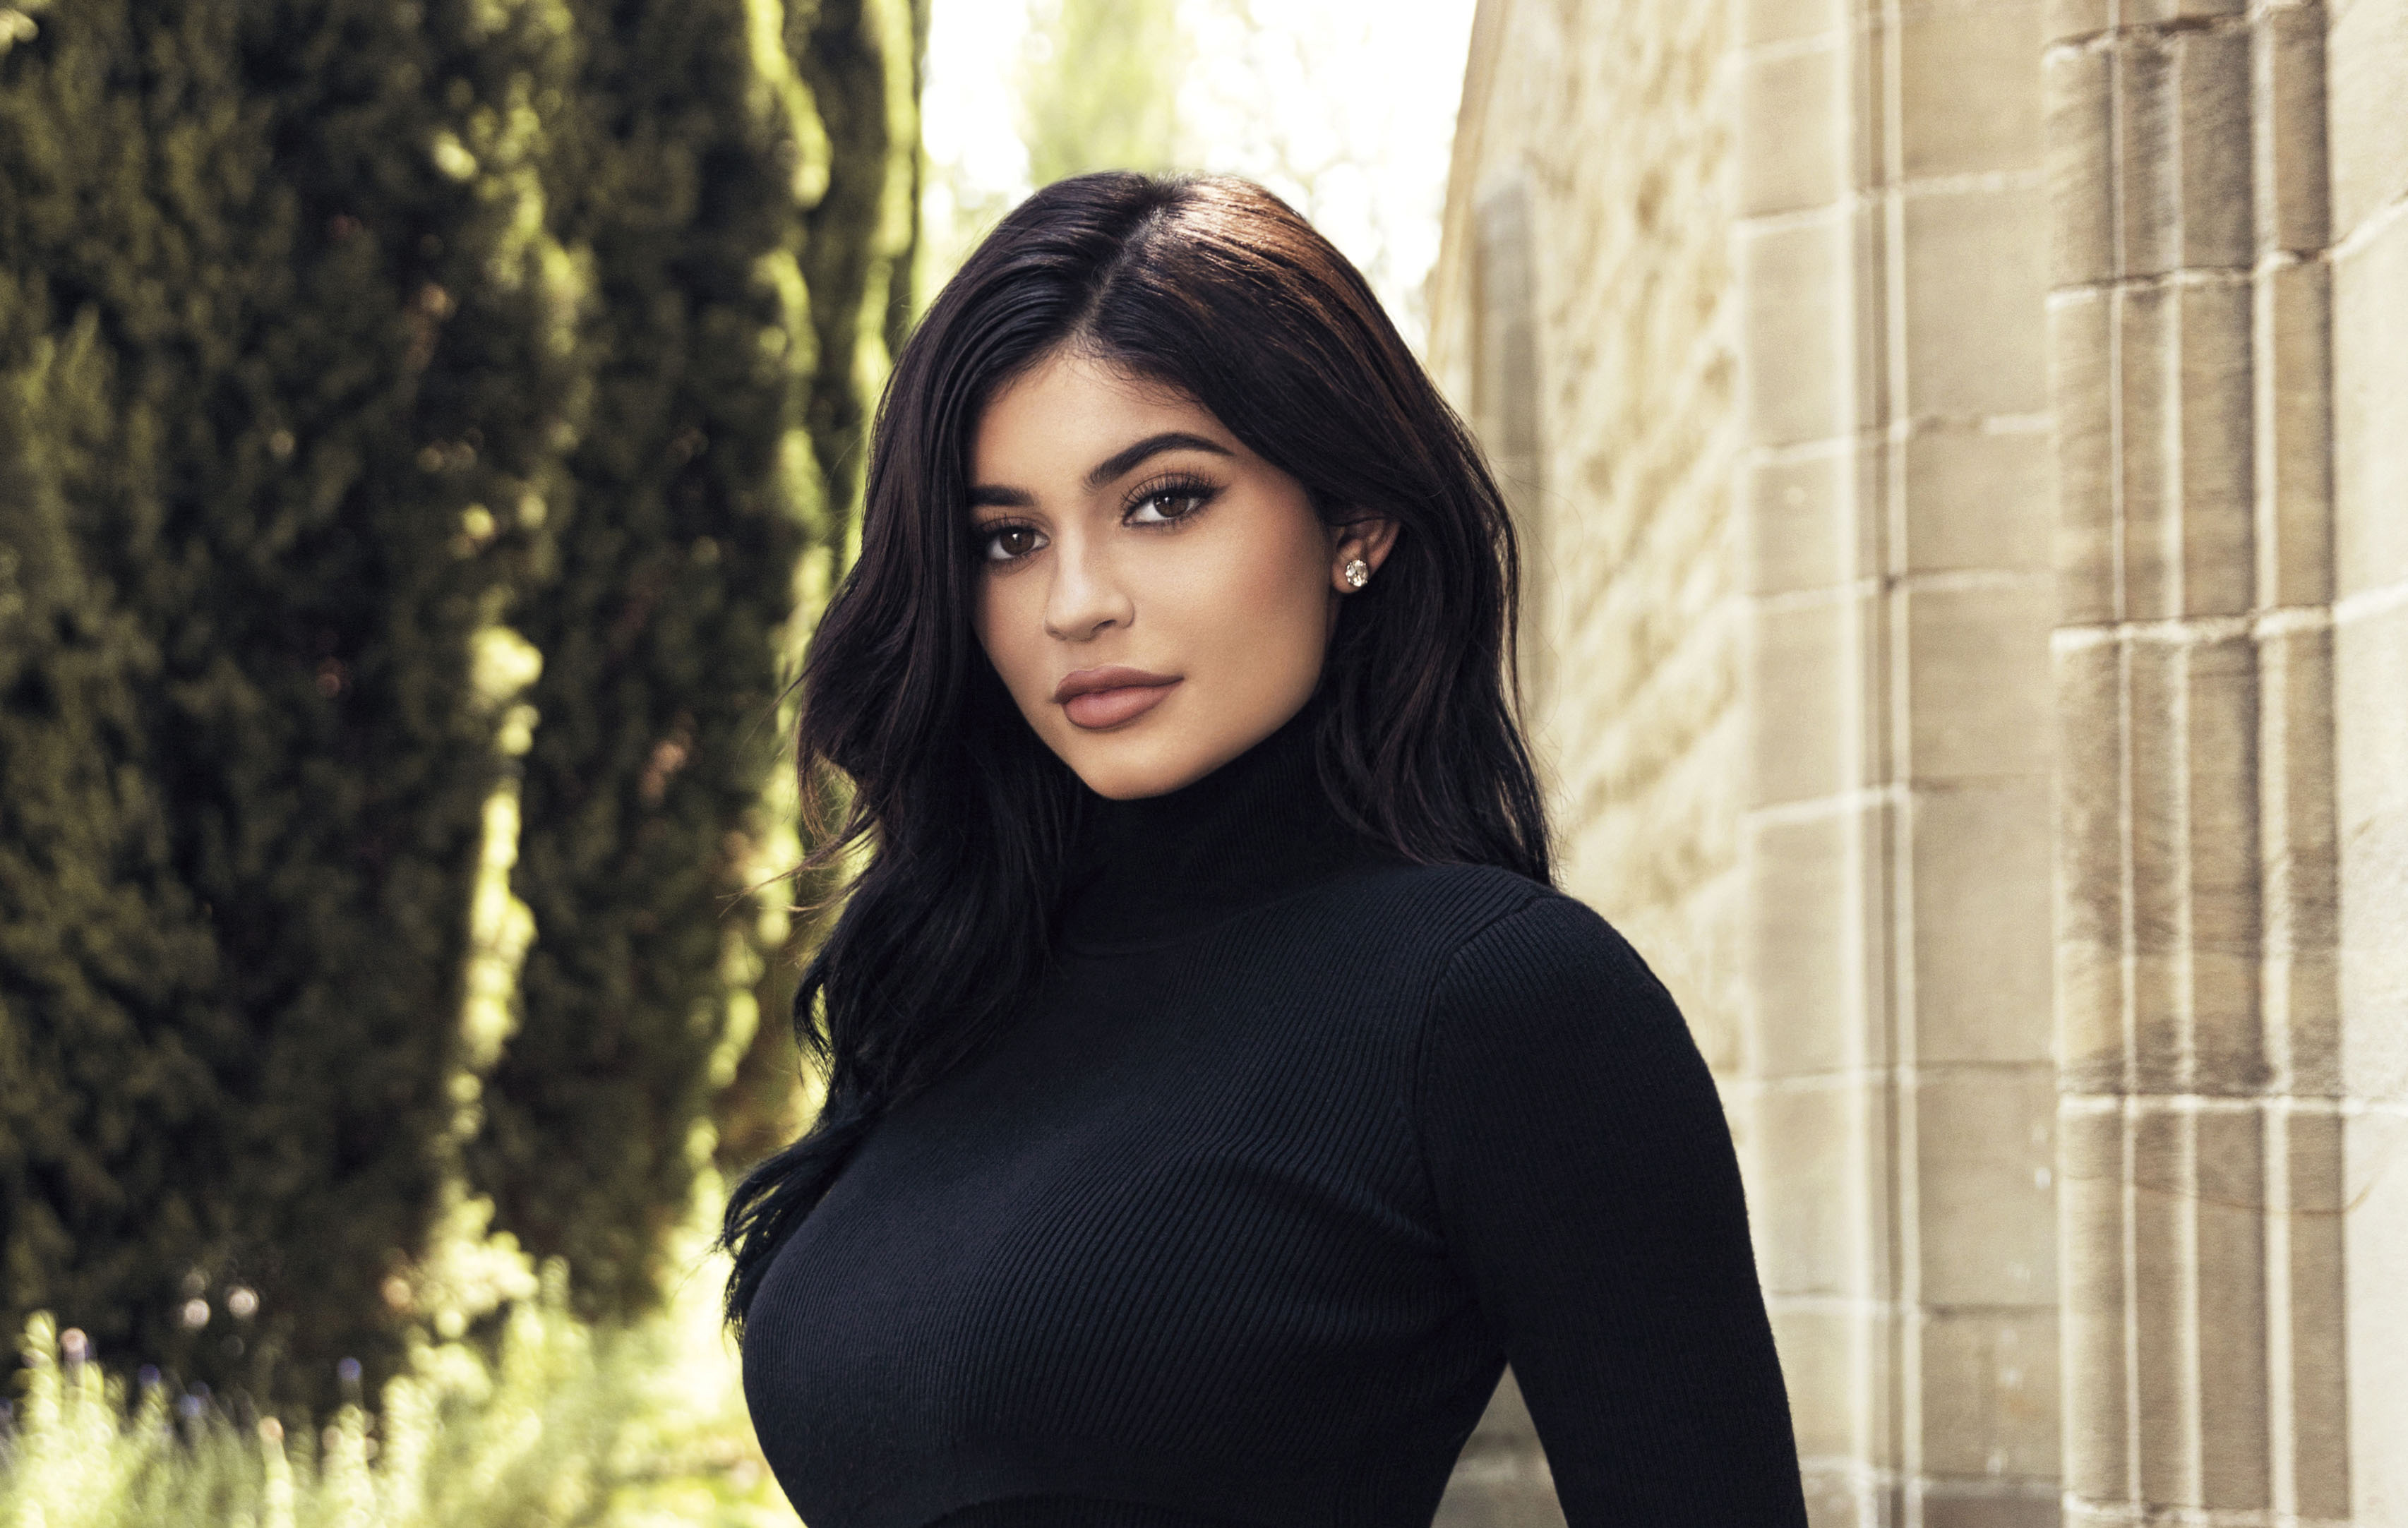 65 Kylie Jenner Hd Wallpapers Background Images